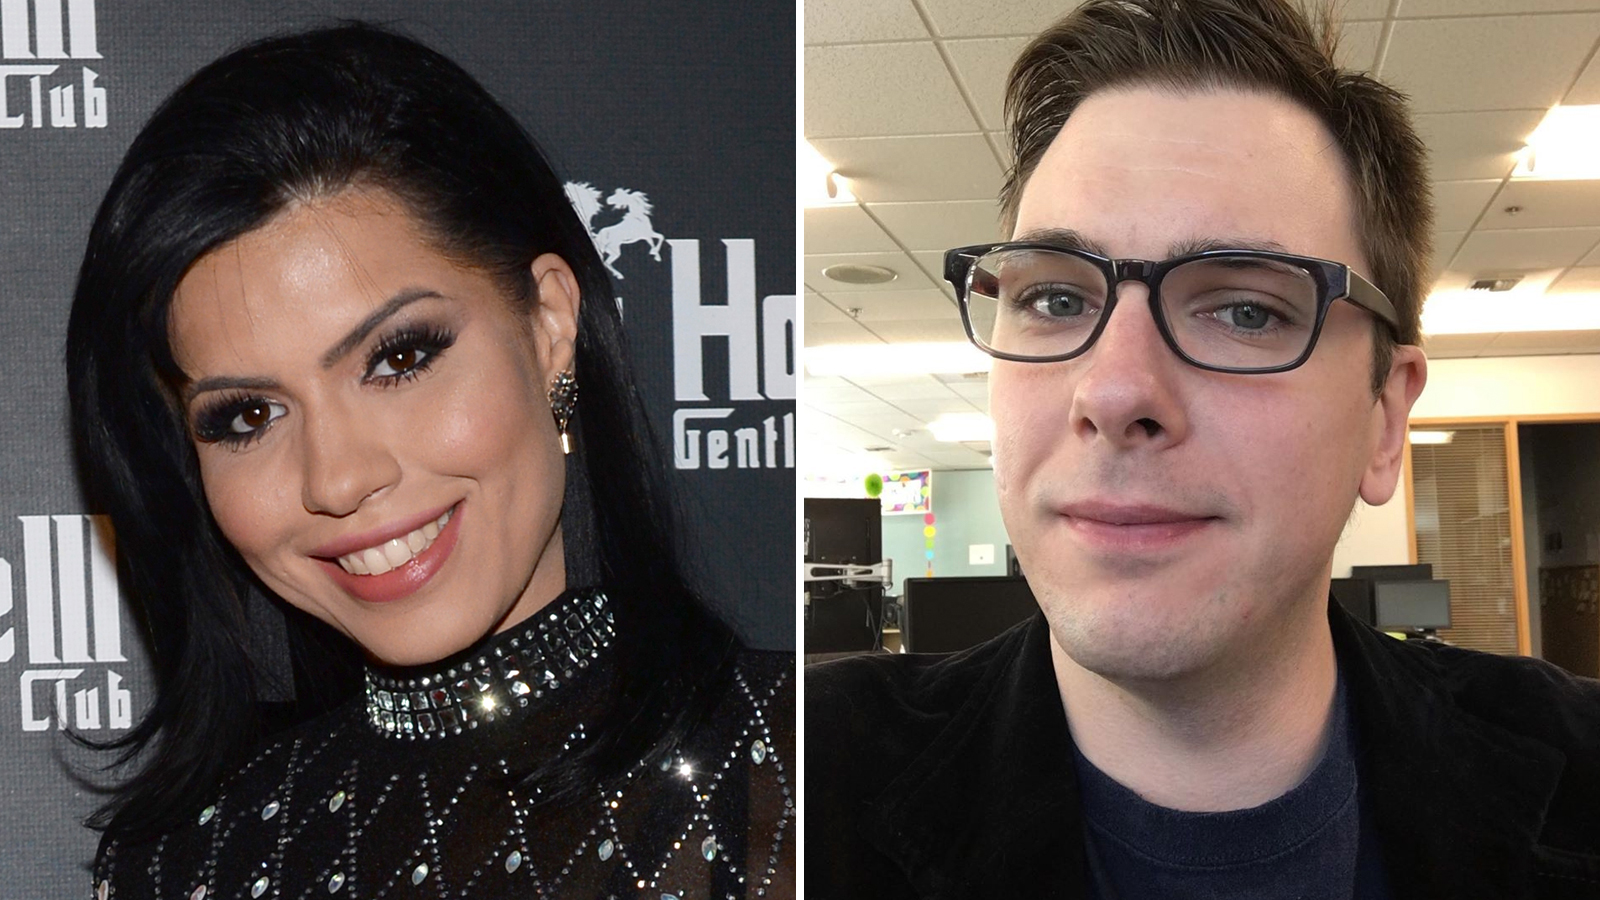 90 Day Fiance': Larissa Dos Santos Lima Reacts to Colt